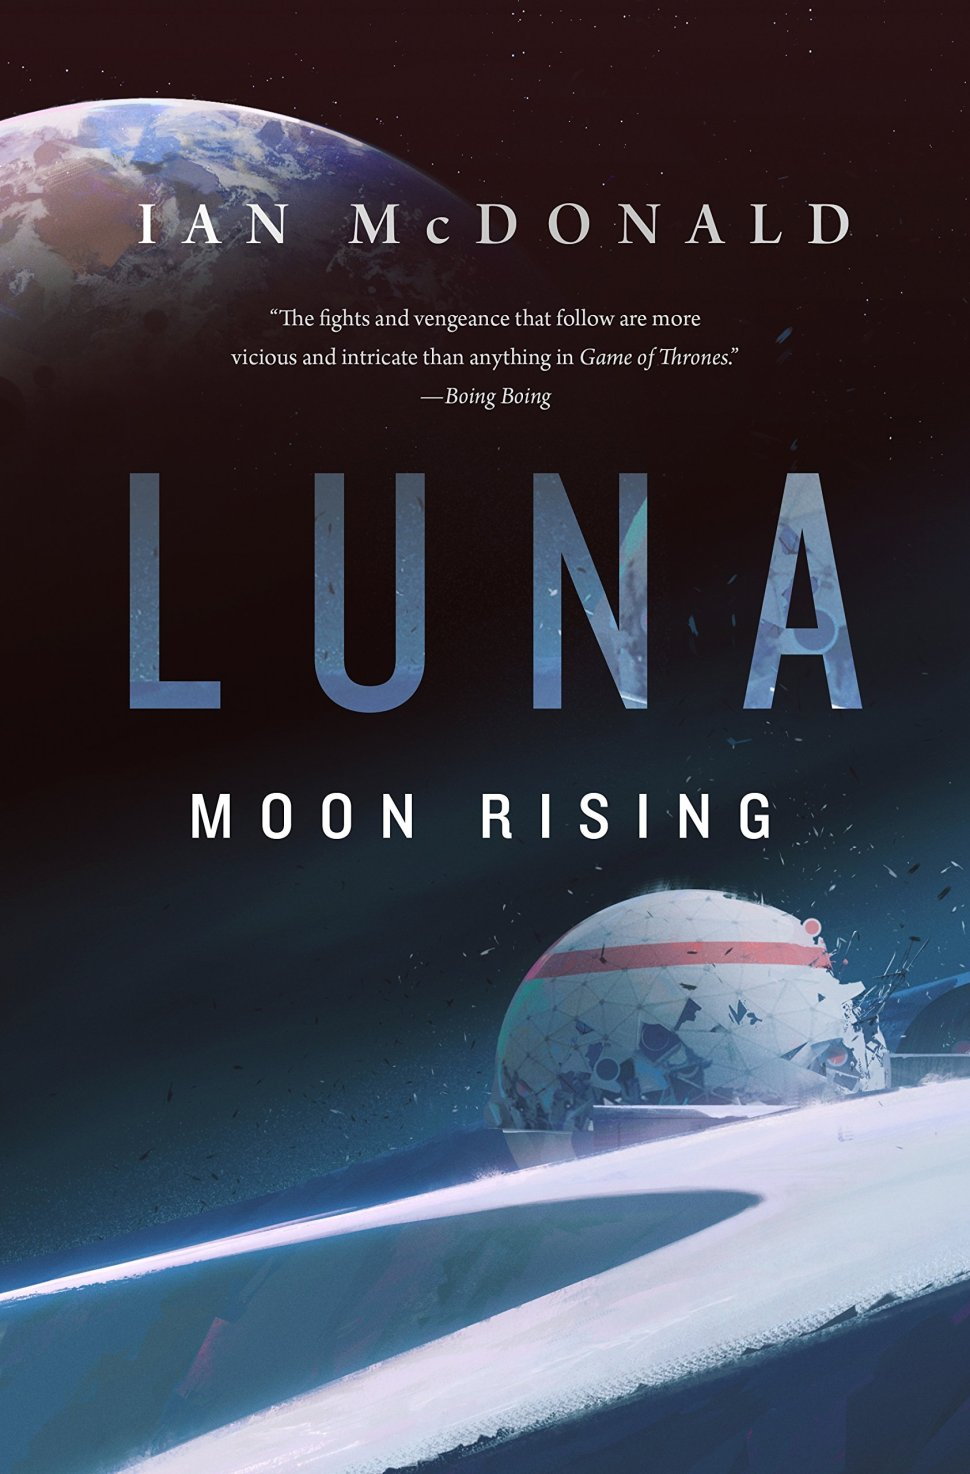 Luna: Moon Rising, in which Ian McDonald brings the trilogy to an astounding, intricate, exciting and satisfying climax